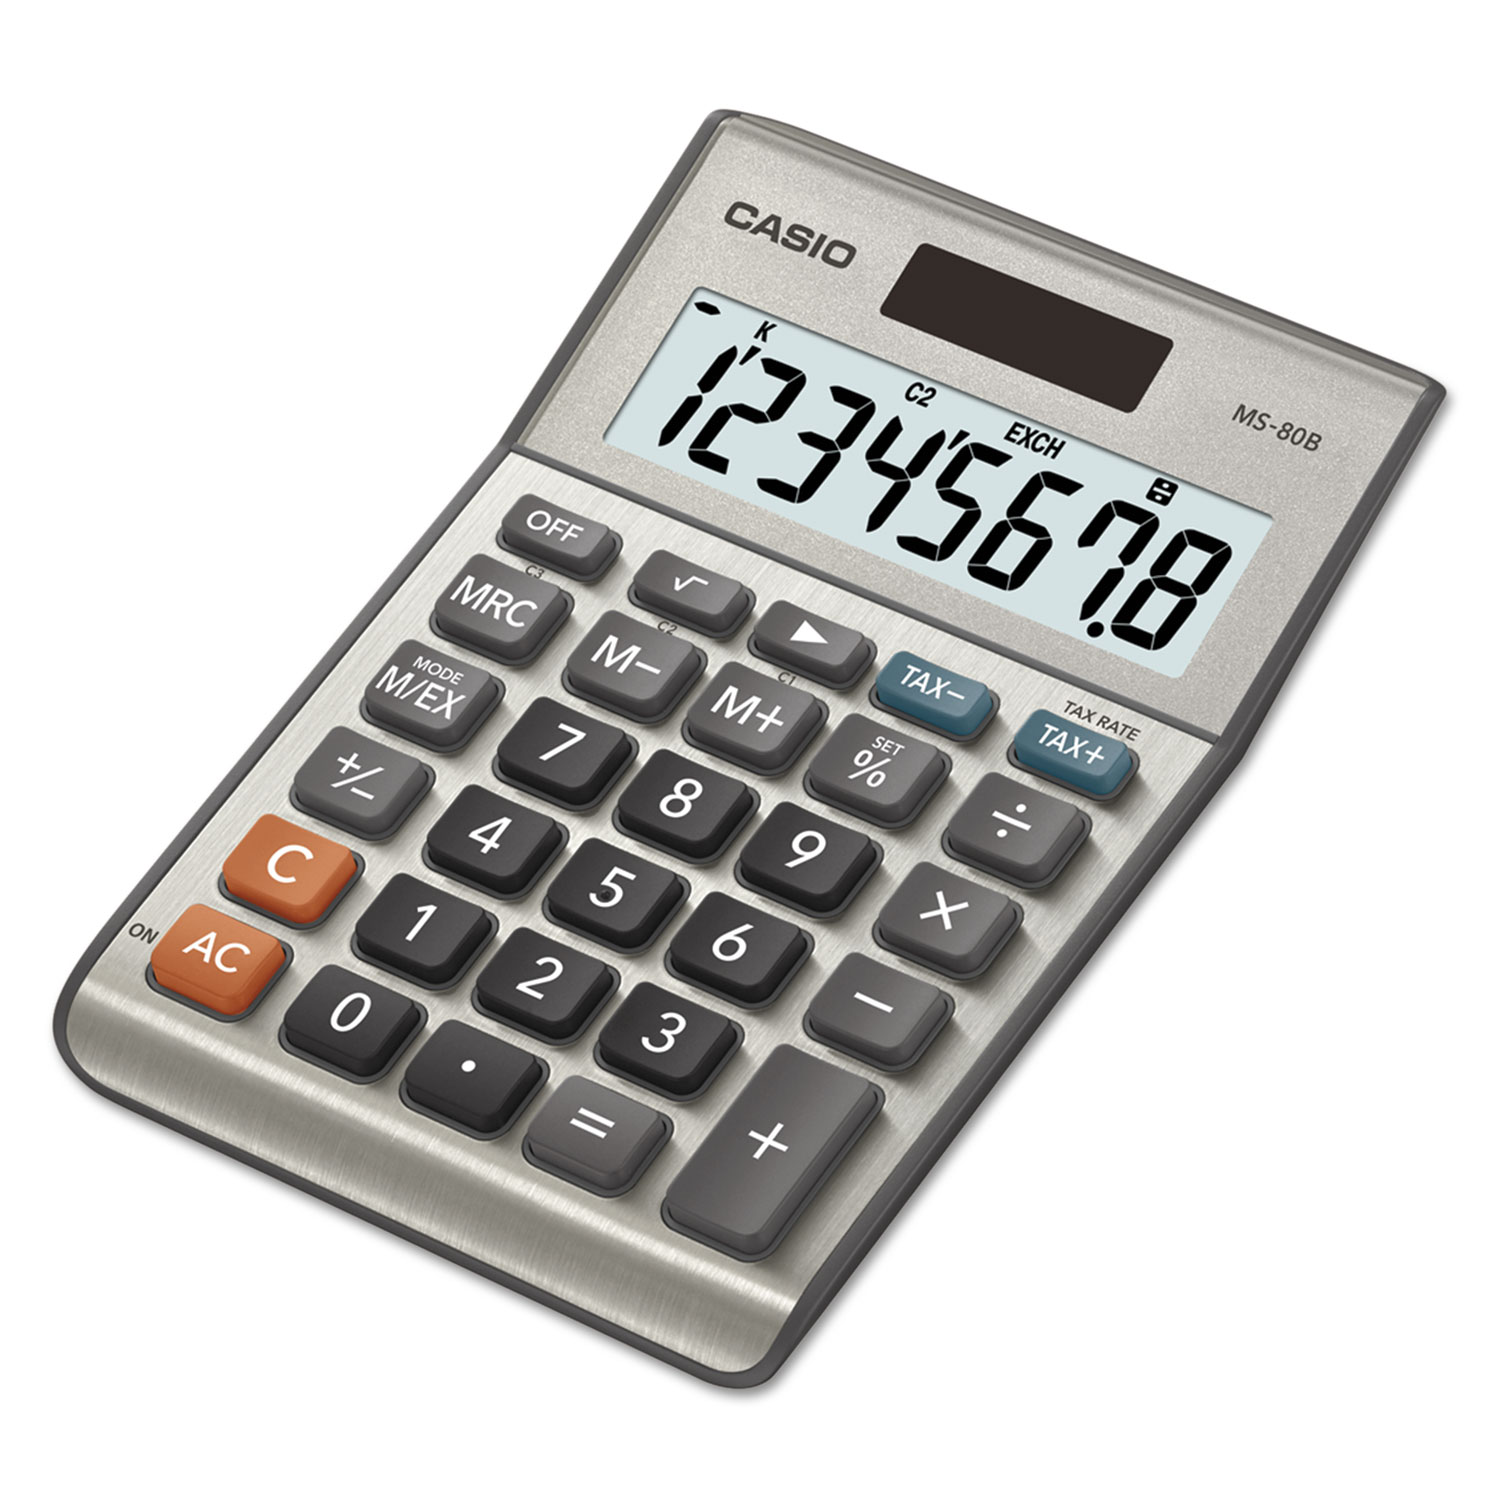 MS-80B Tax and Currency Calculator, 8-Digit LCD